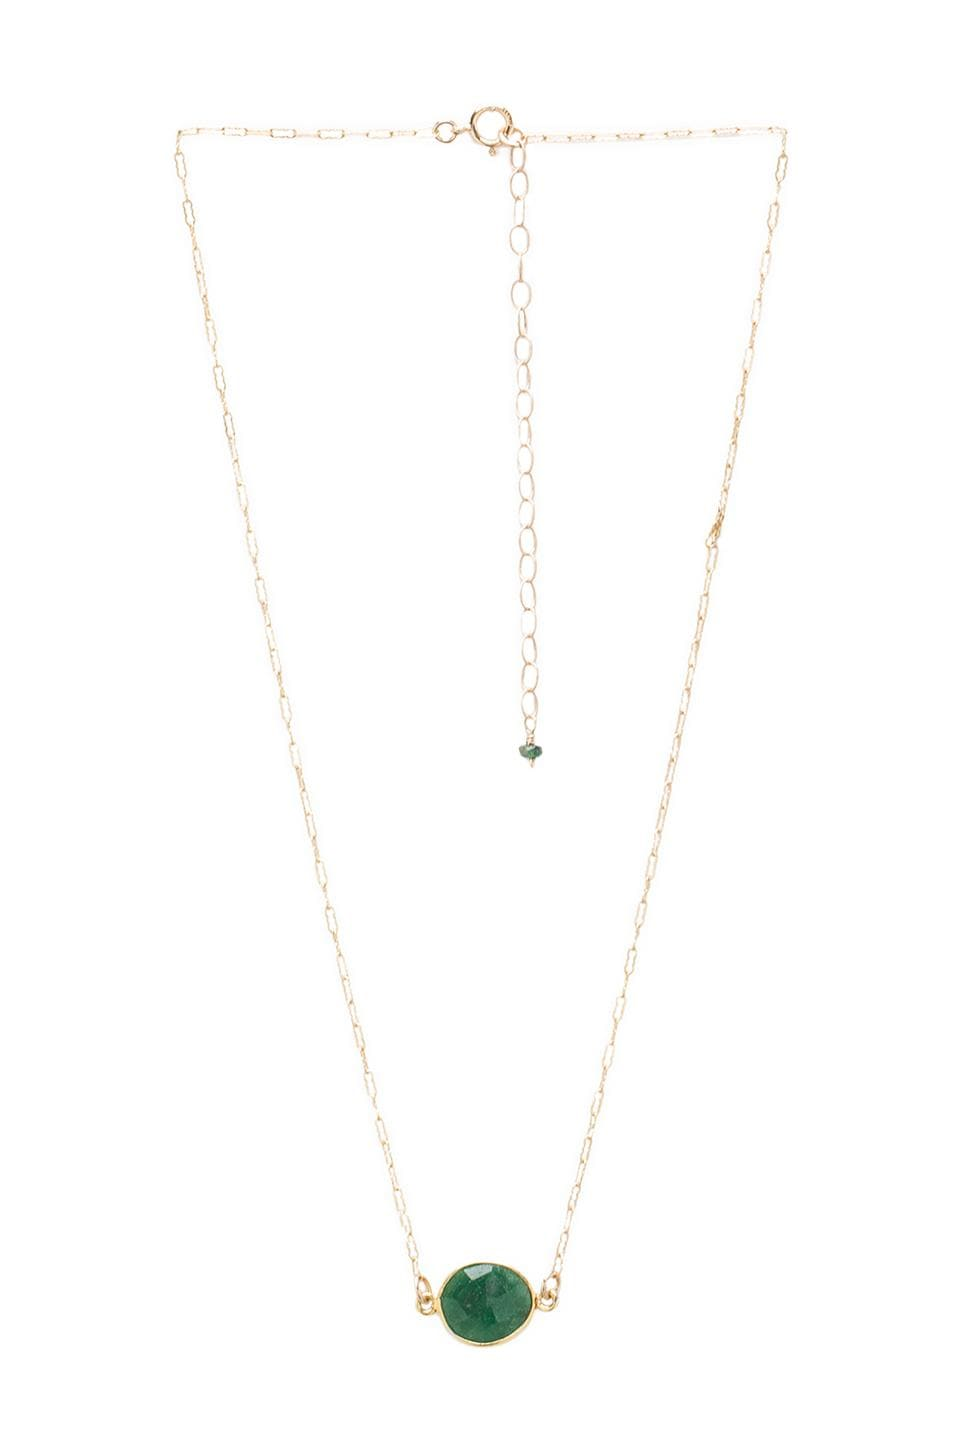 Natalie B Jewelry Natalie B Stone Drop Necklace in Emerald